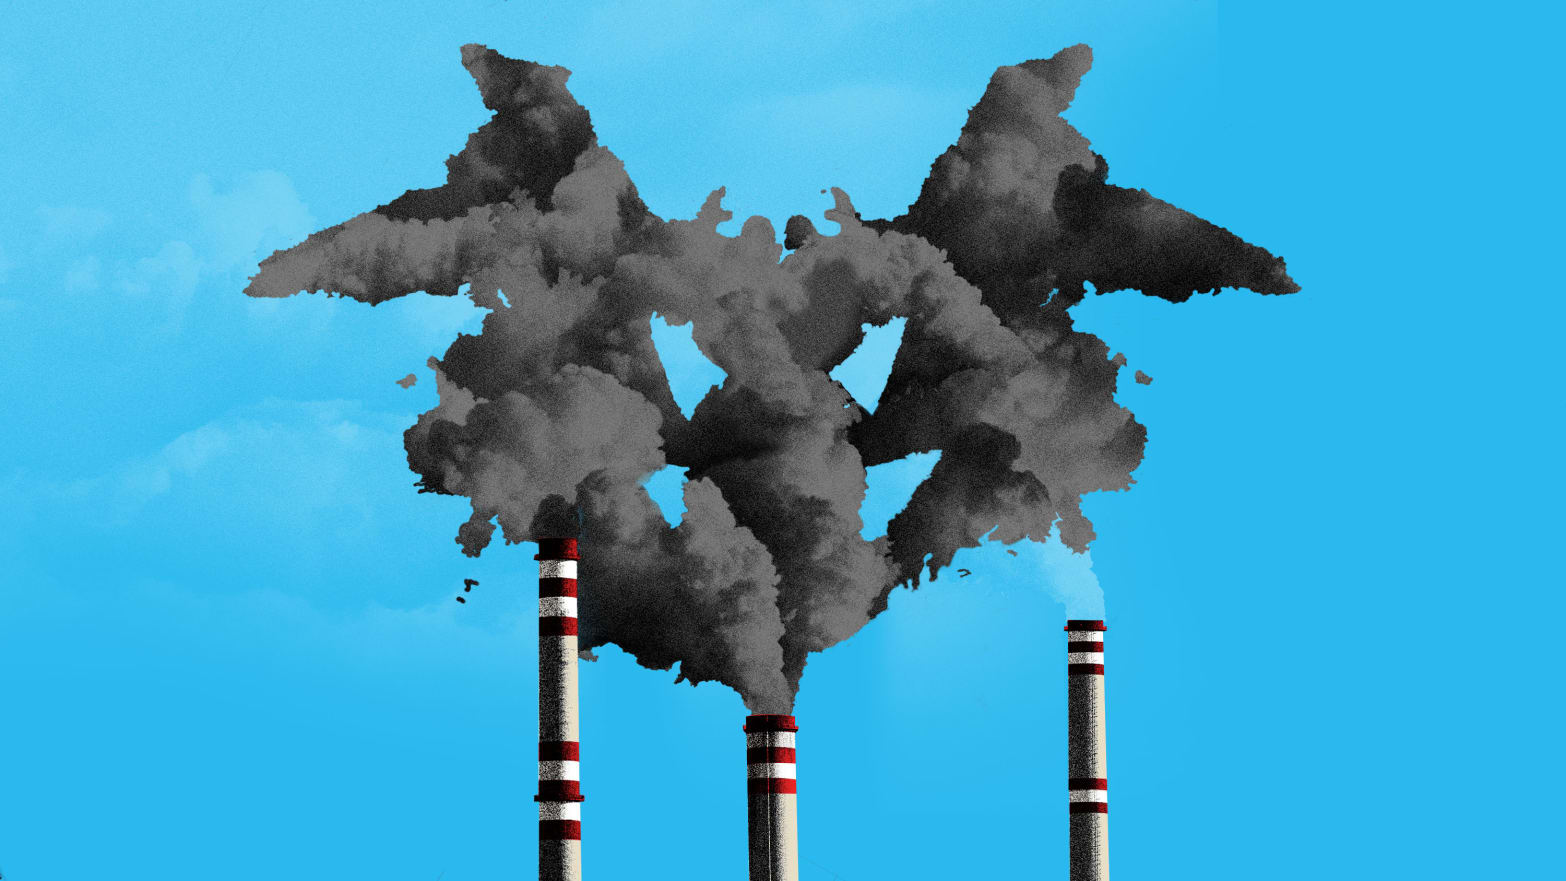 illustration of factory towers spewing out gray polluted smoke in the form of rorsach test mental health ptsd post traumatic stress disorder depression anxiety dead puerto rico